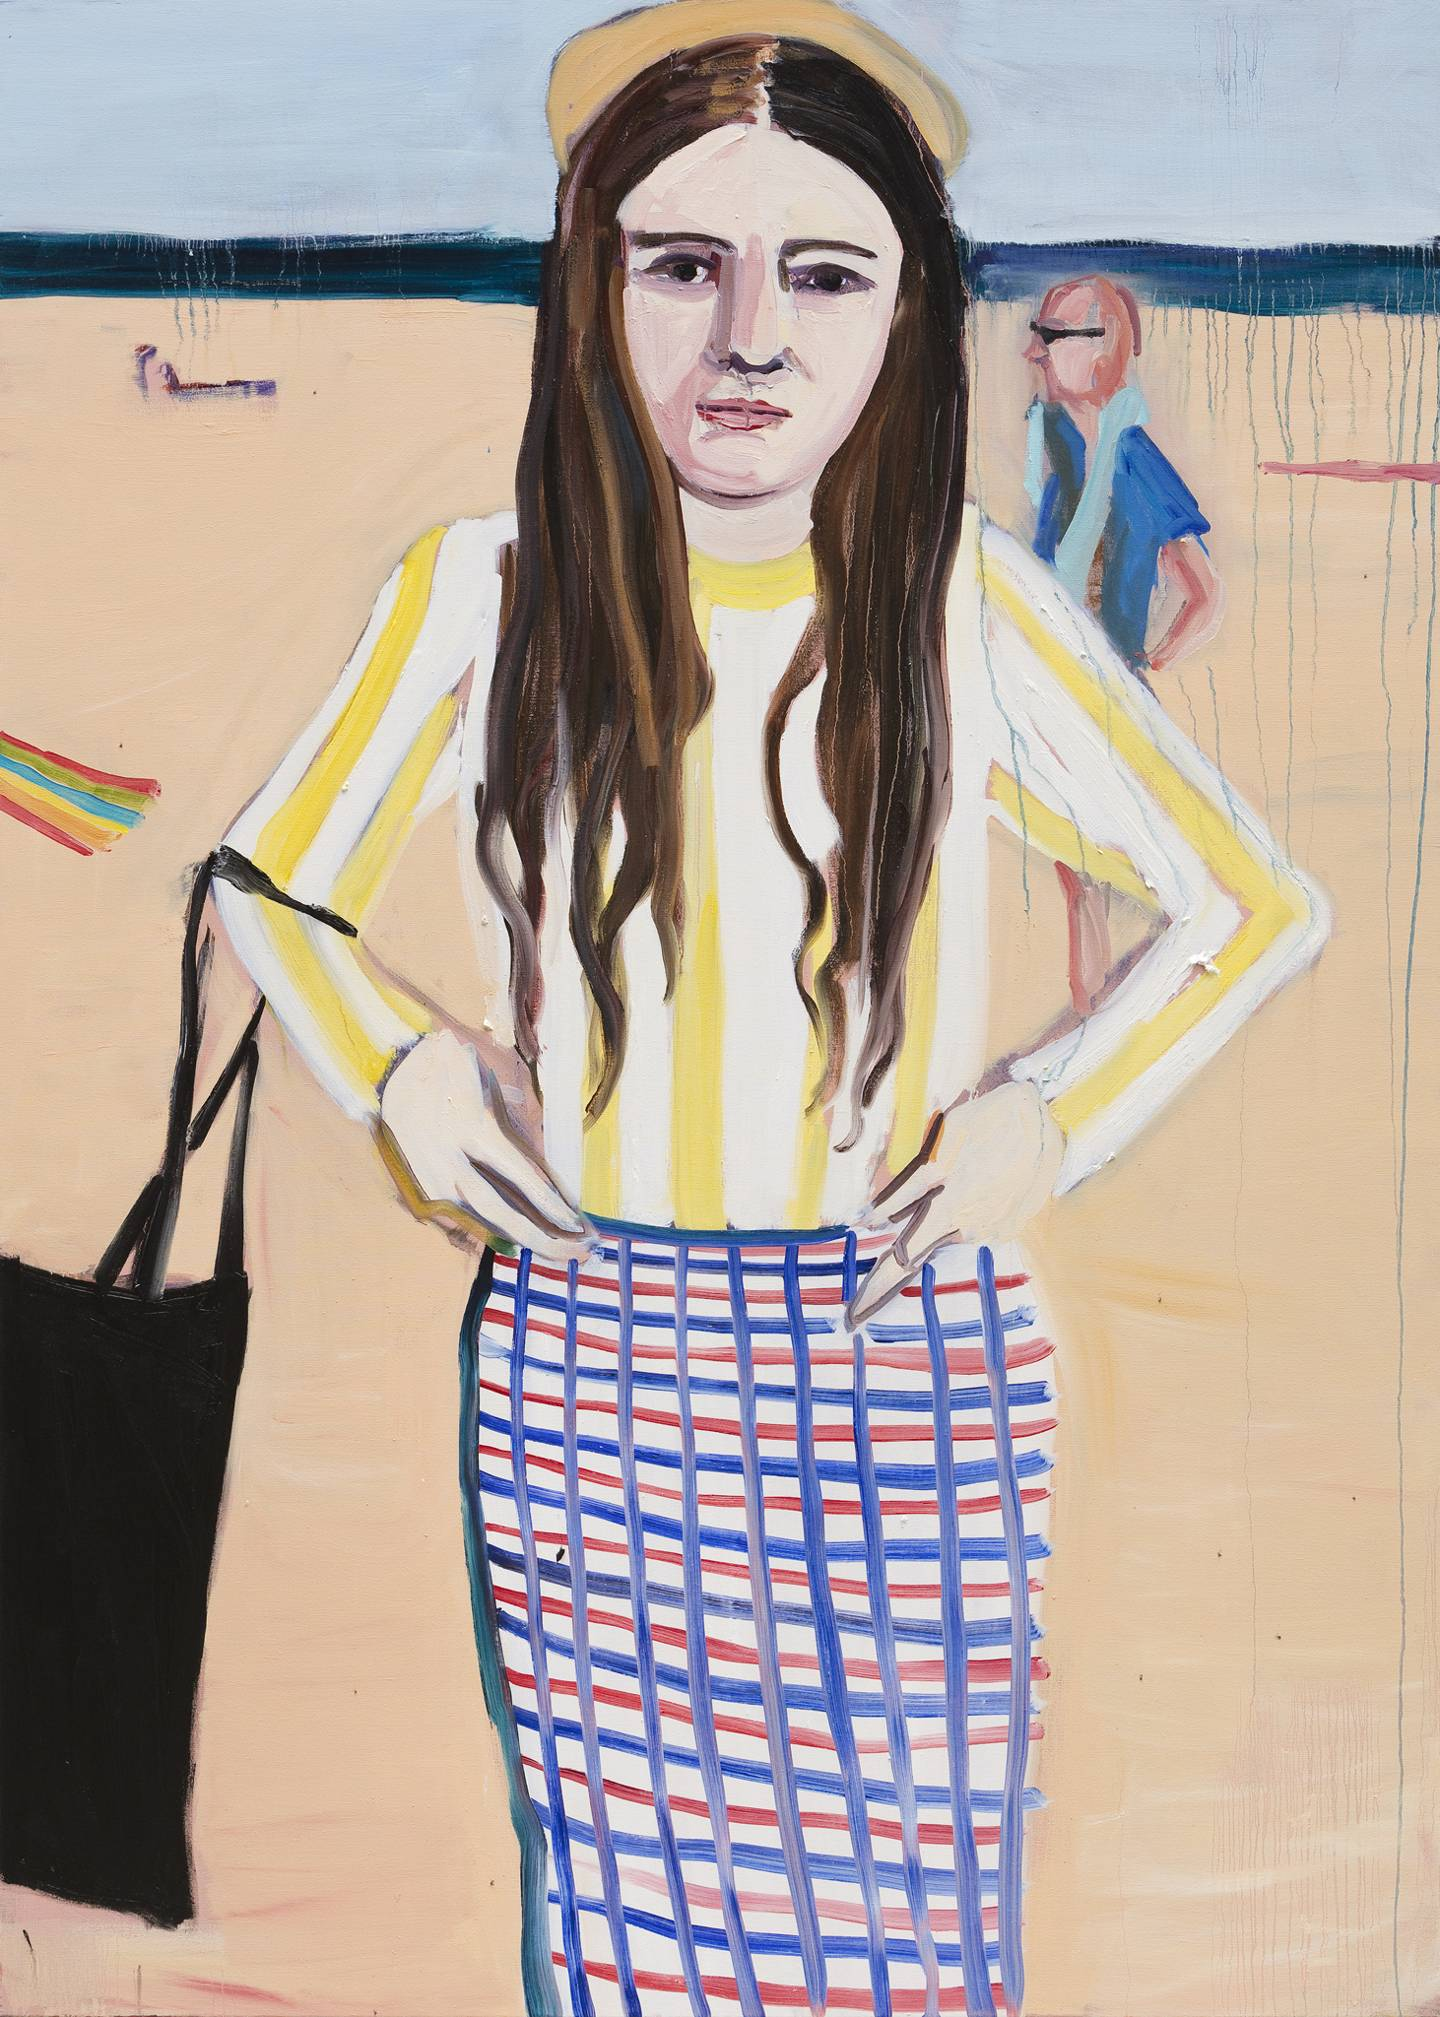 The untold story: 'Coney Island' by Chantal Joffe